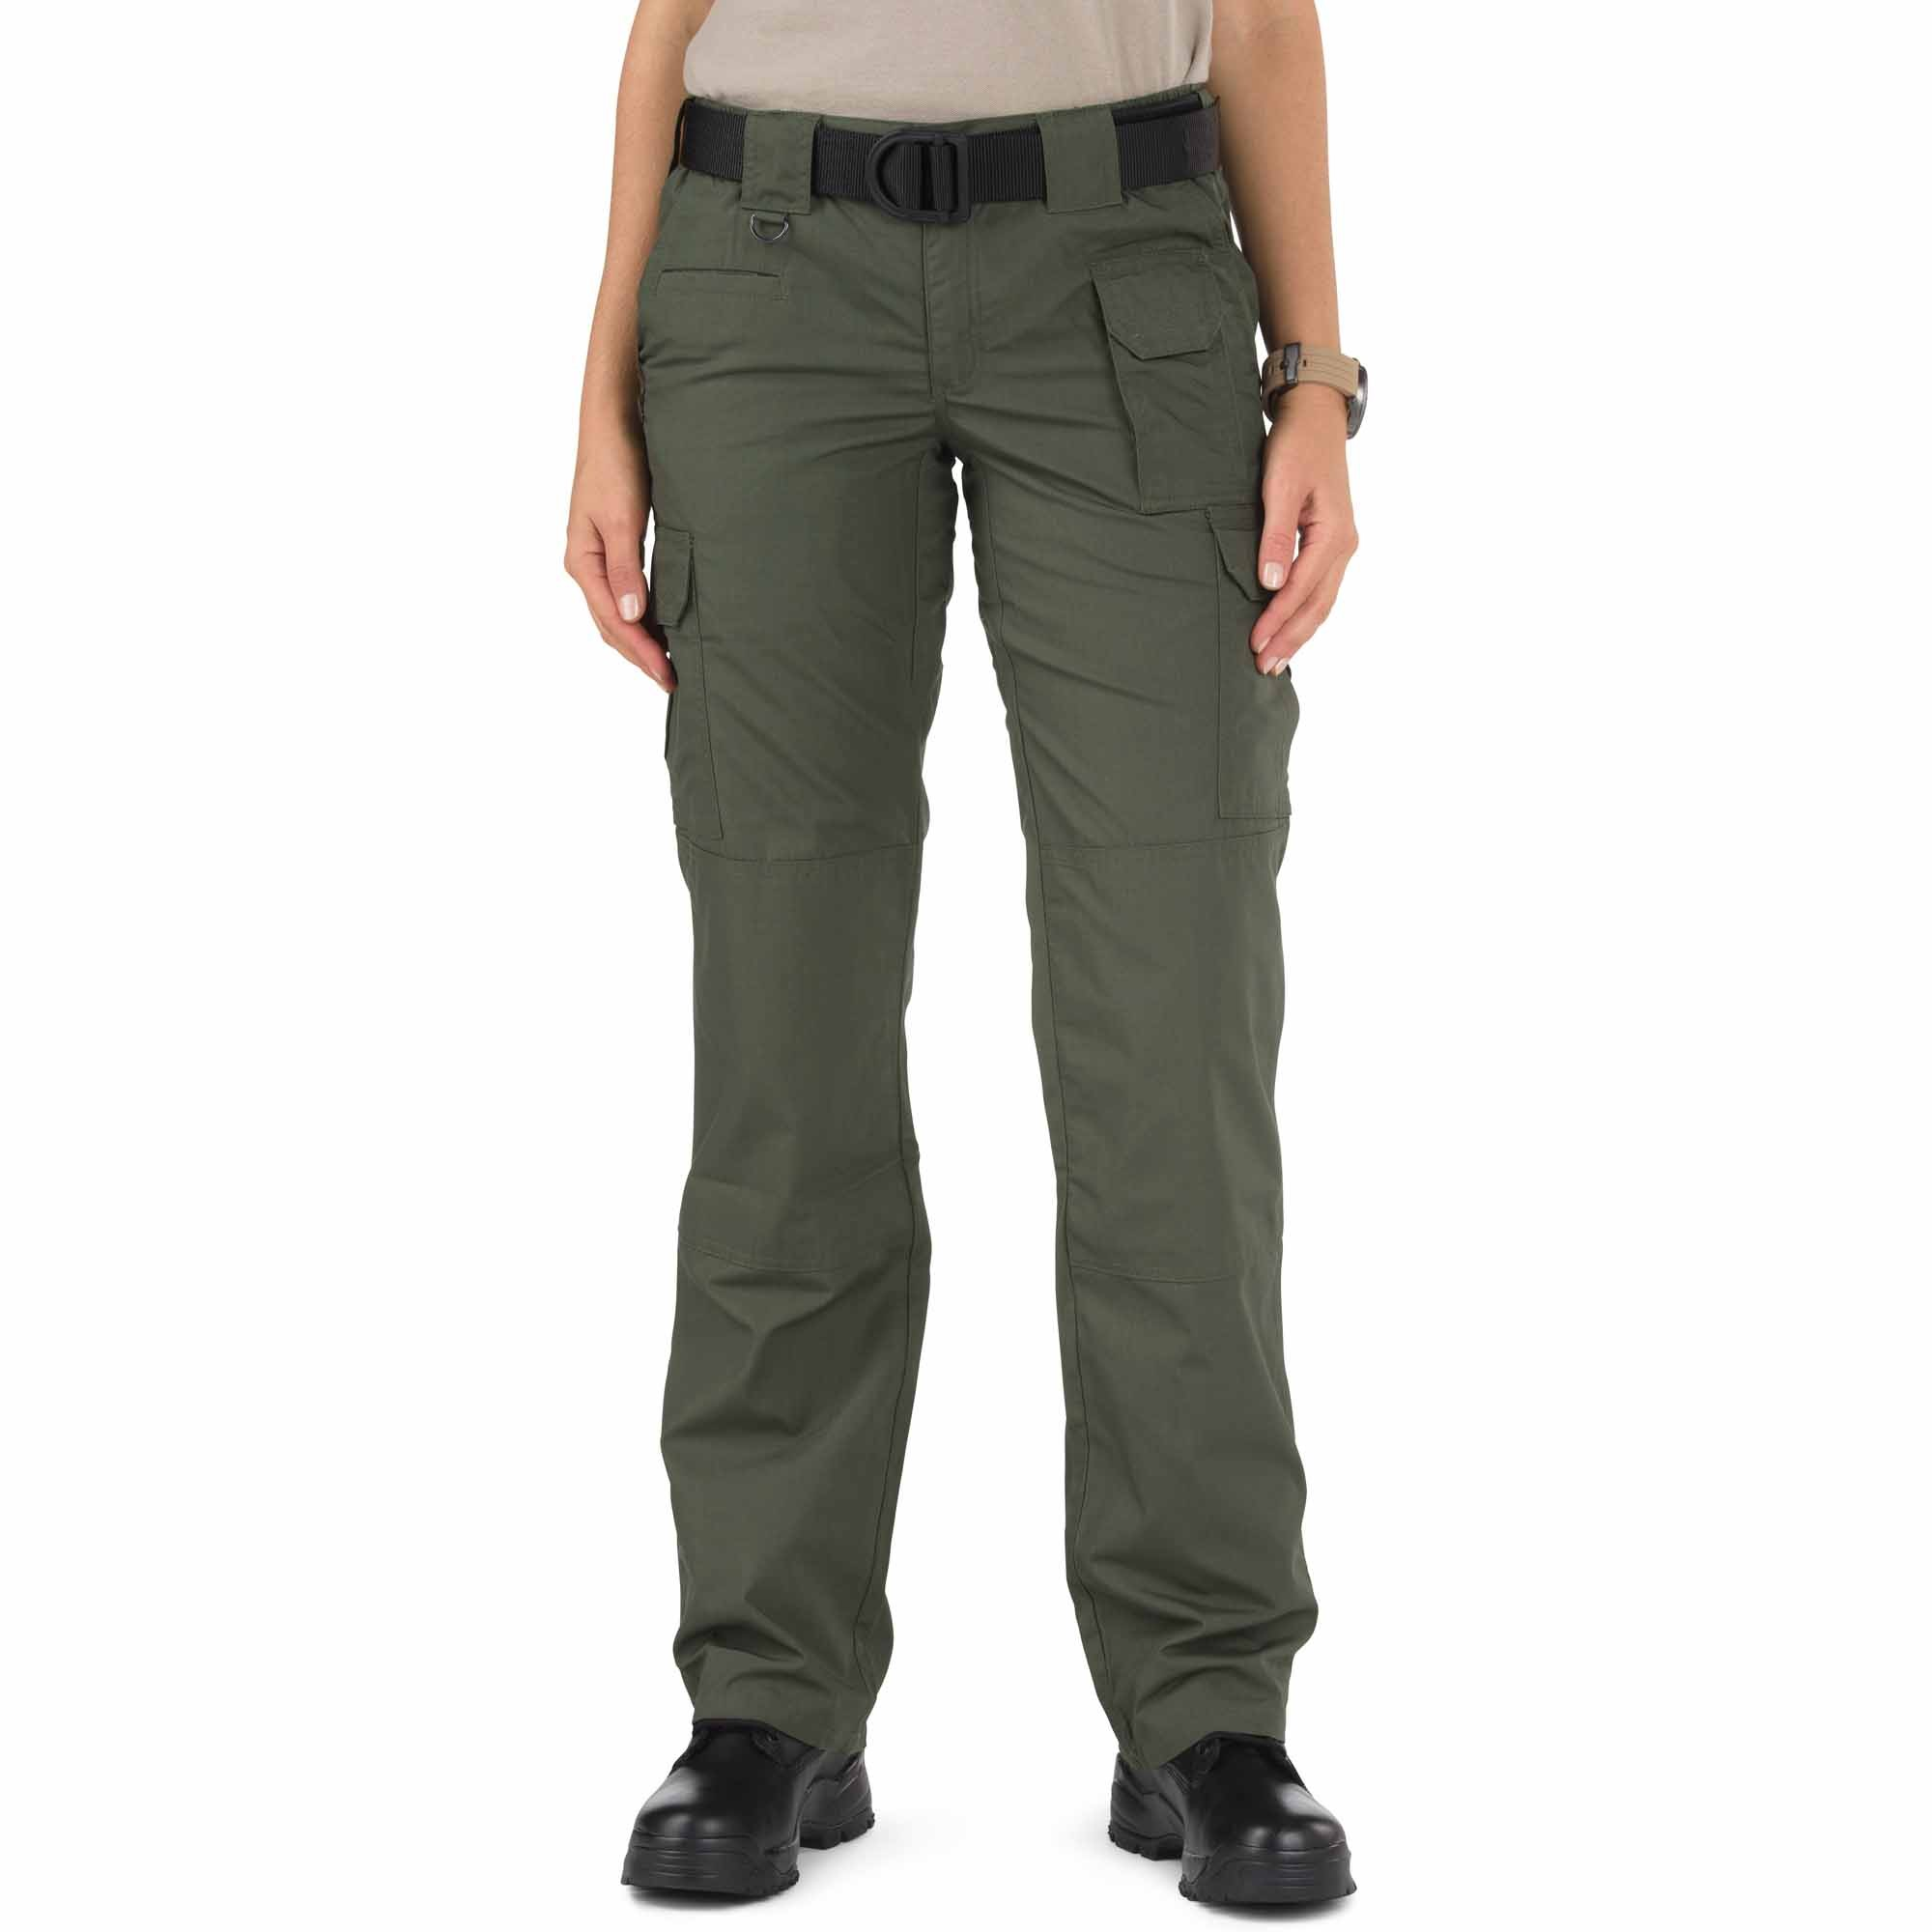 Tactical clothing for women